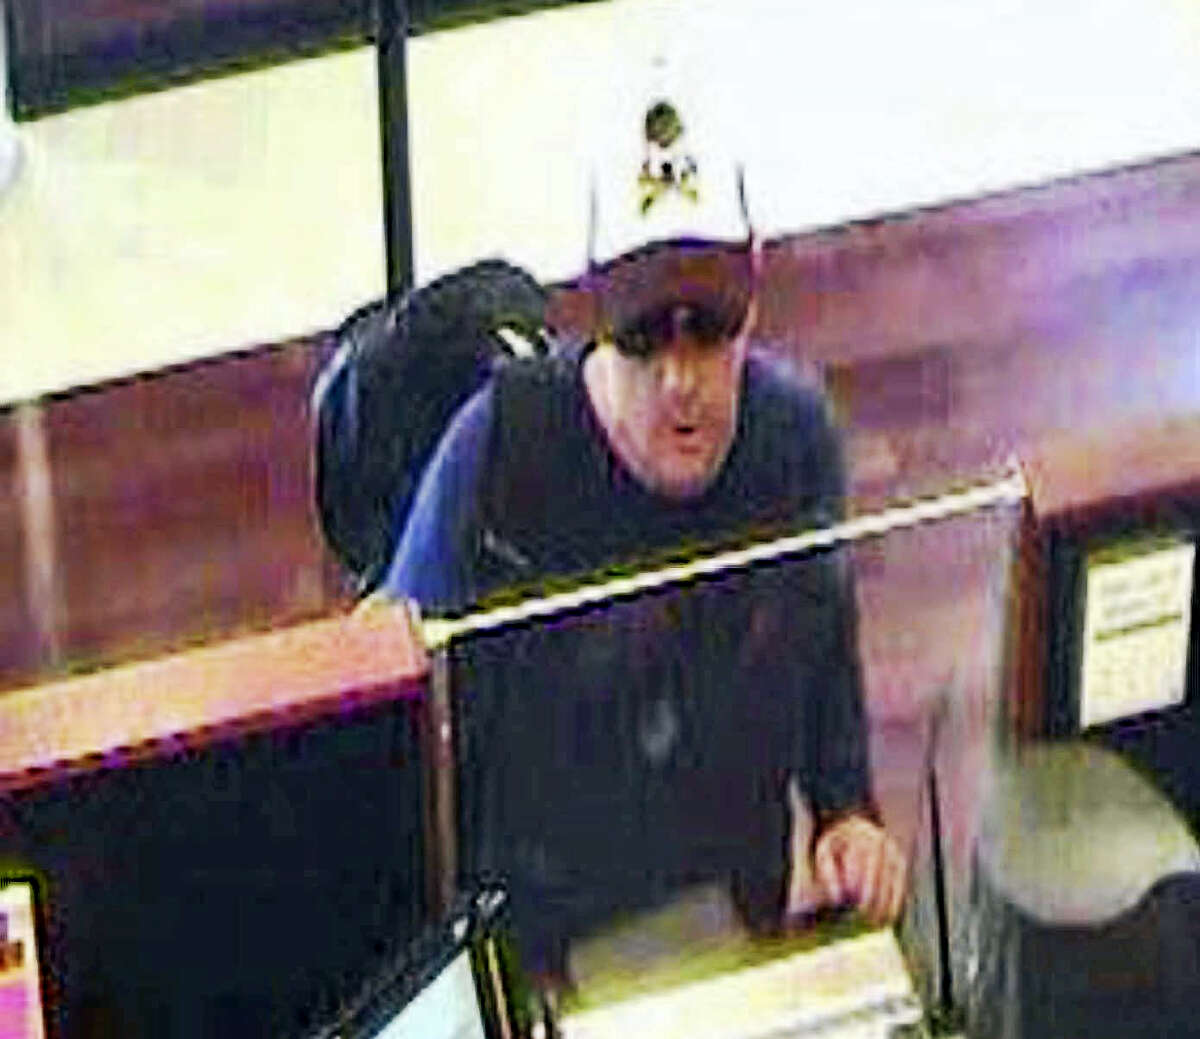 Milford police are looking for this robbery suspect.